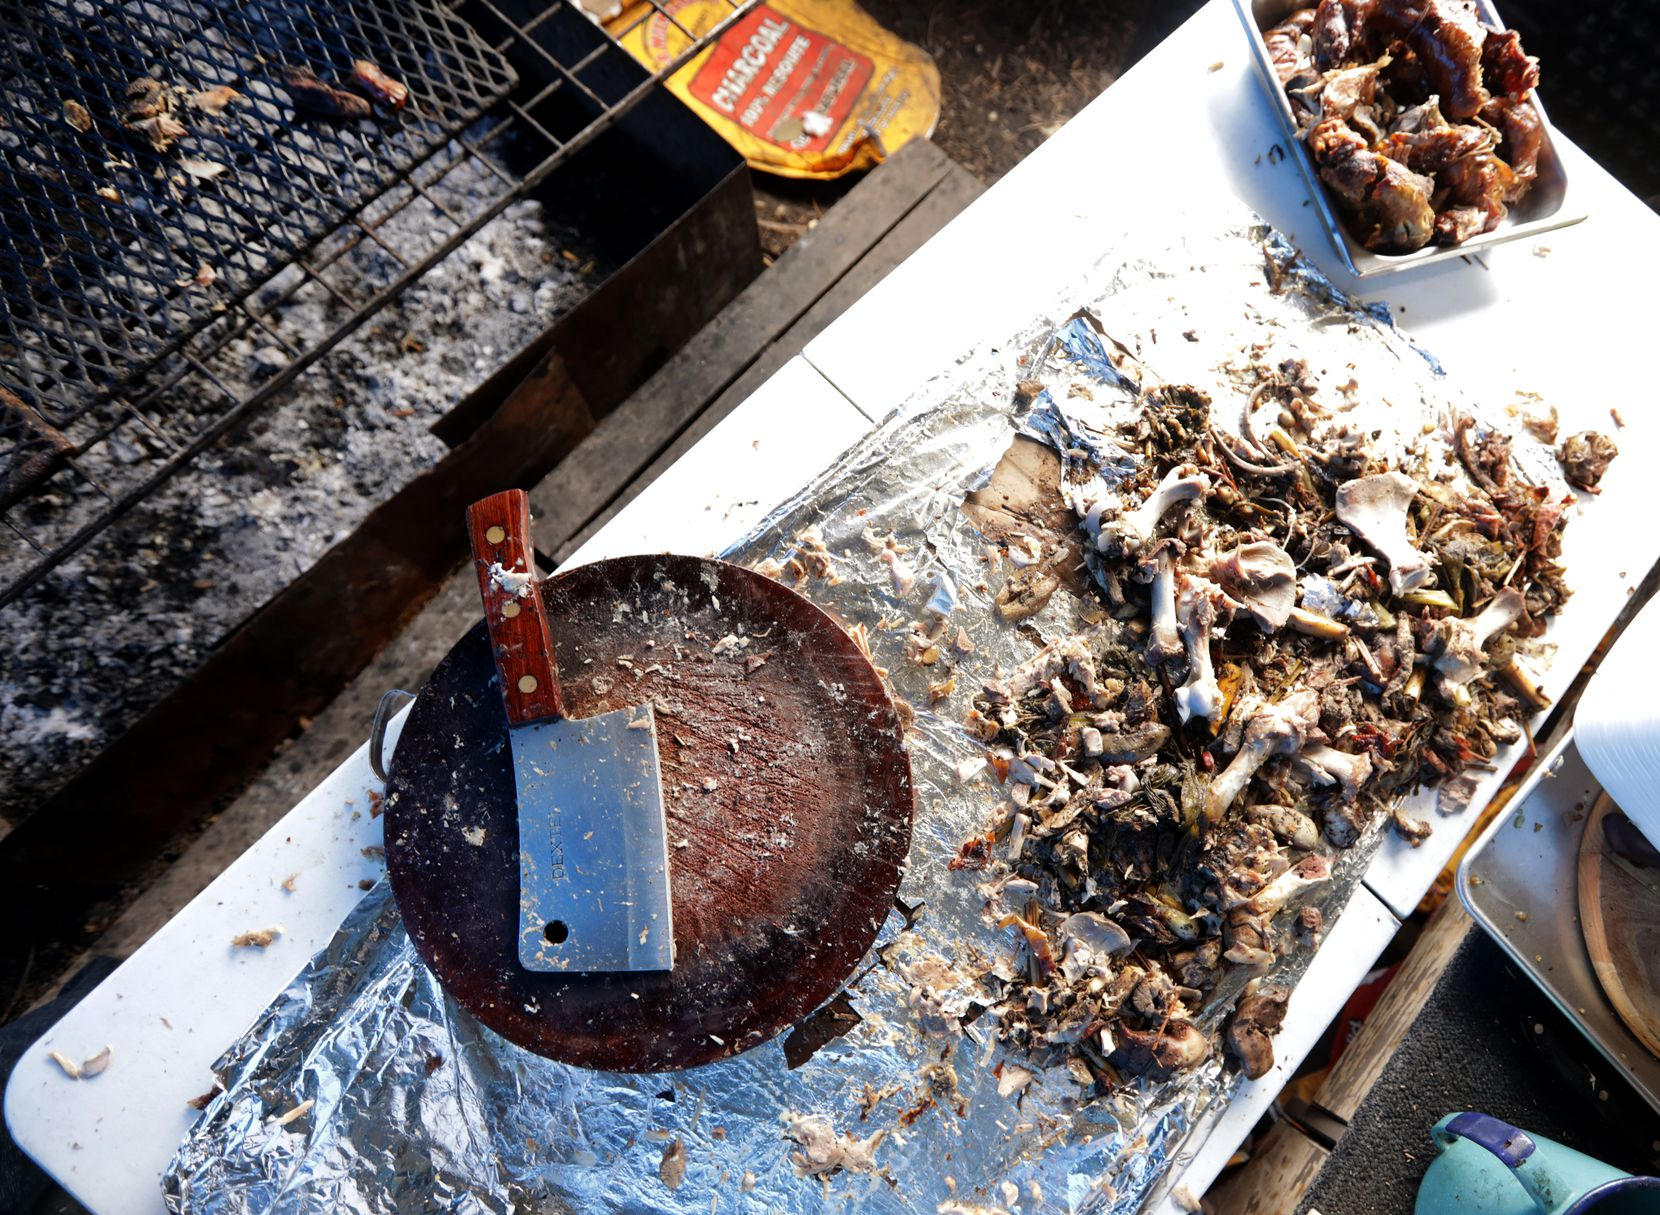 Some of the tools used to prepare the pit-roasted pork.